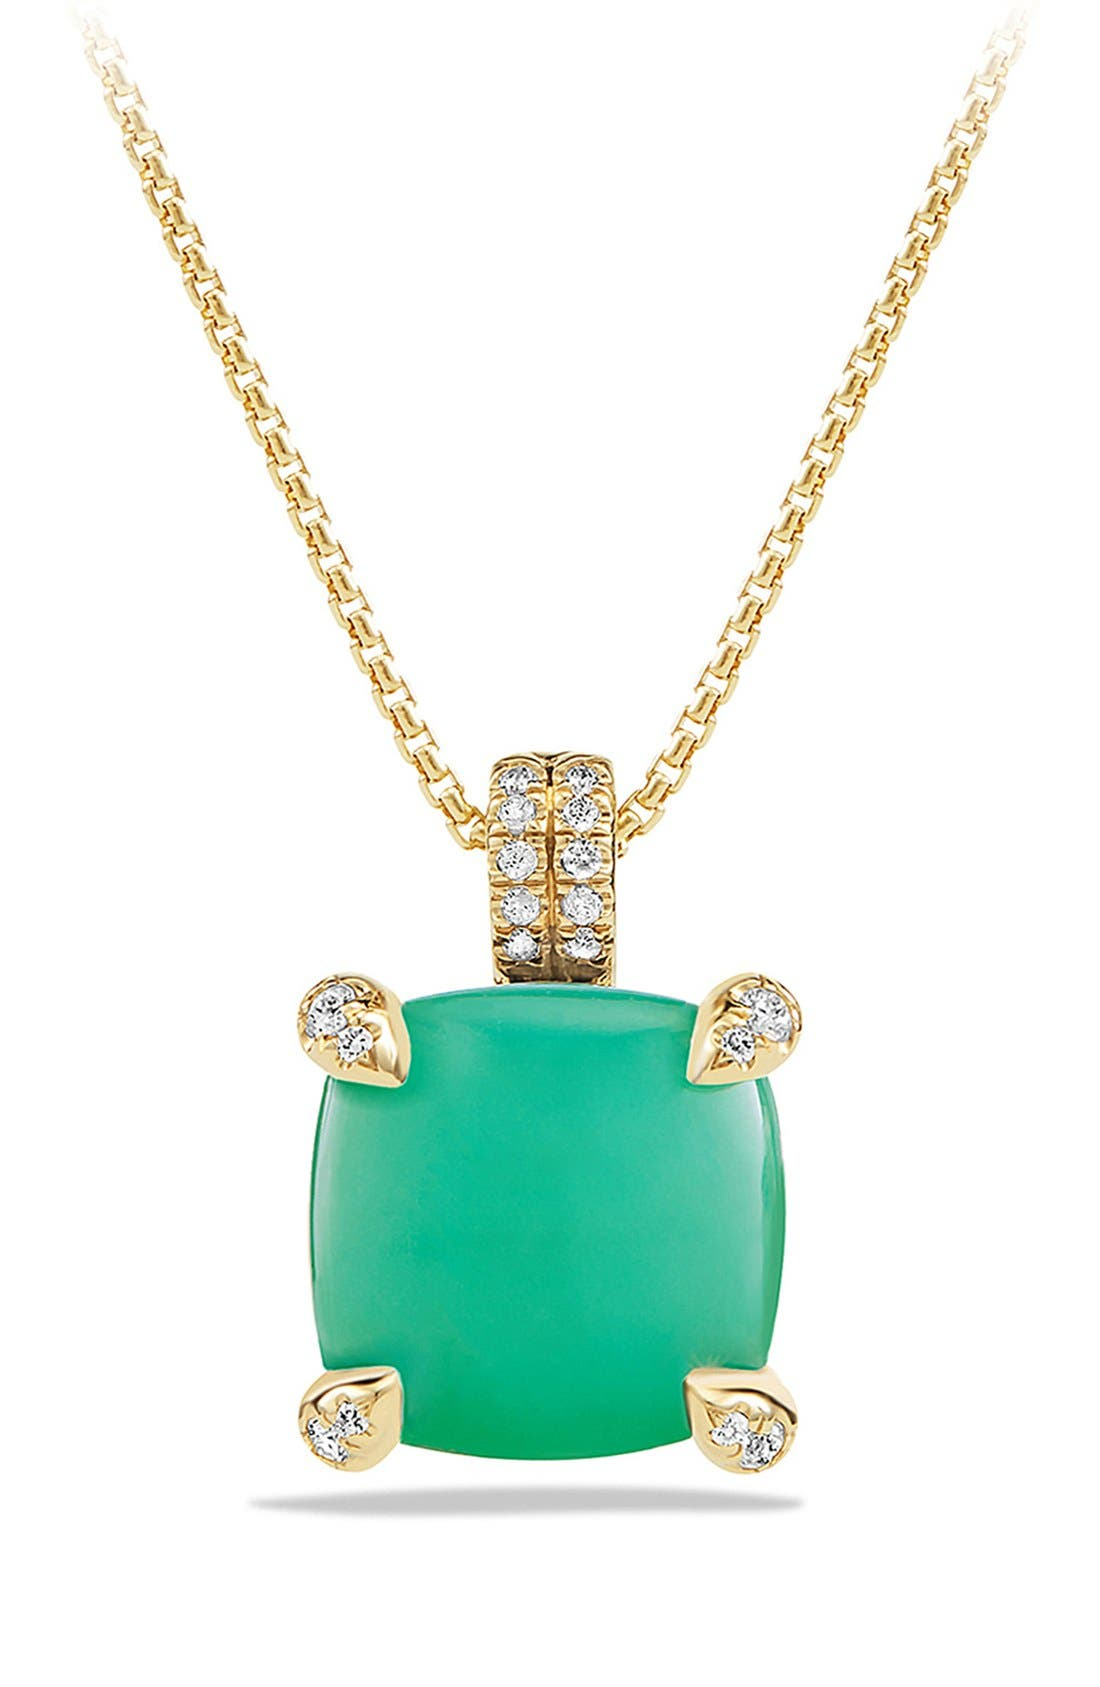 DAVID YURMAN 'Châtelaine' Pendant Necklace with Diamonds, Main, color, CHRYSOPRASE